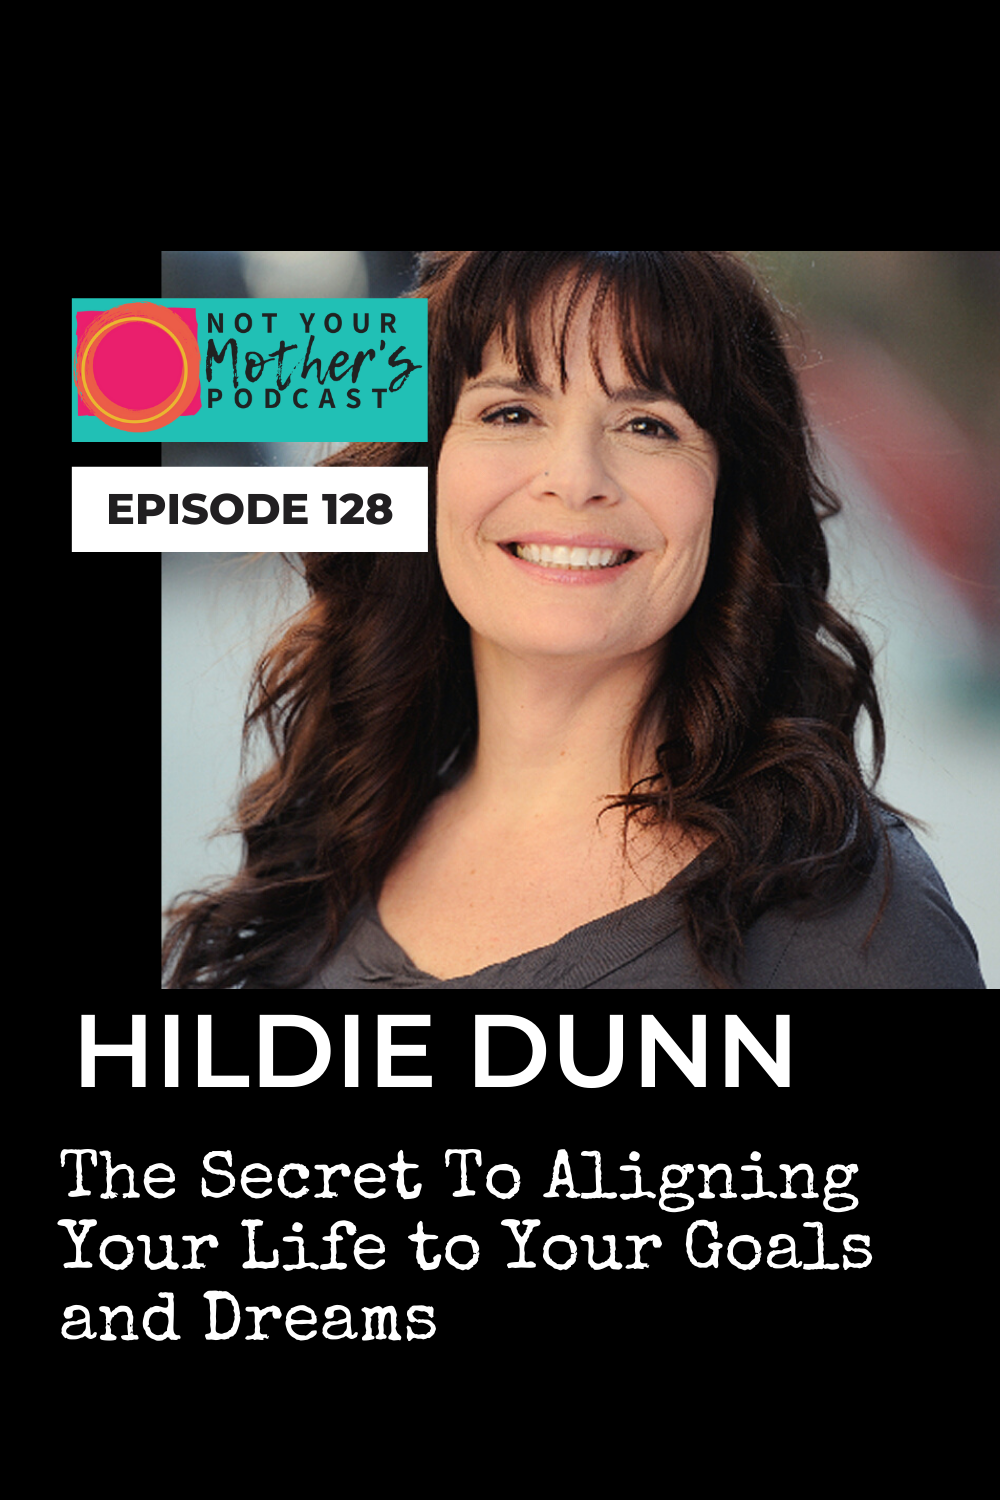 The Secret To Aligning Your Life to Your Goals and Dreams with Hildie Dunn PIN